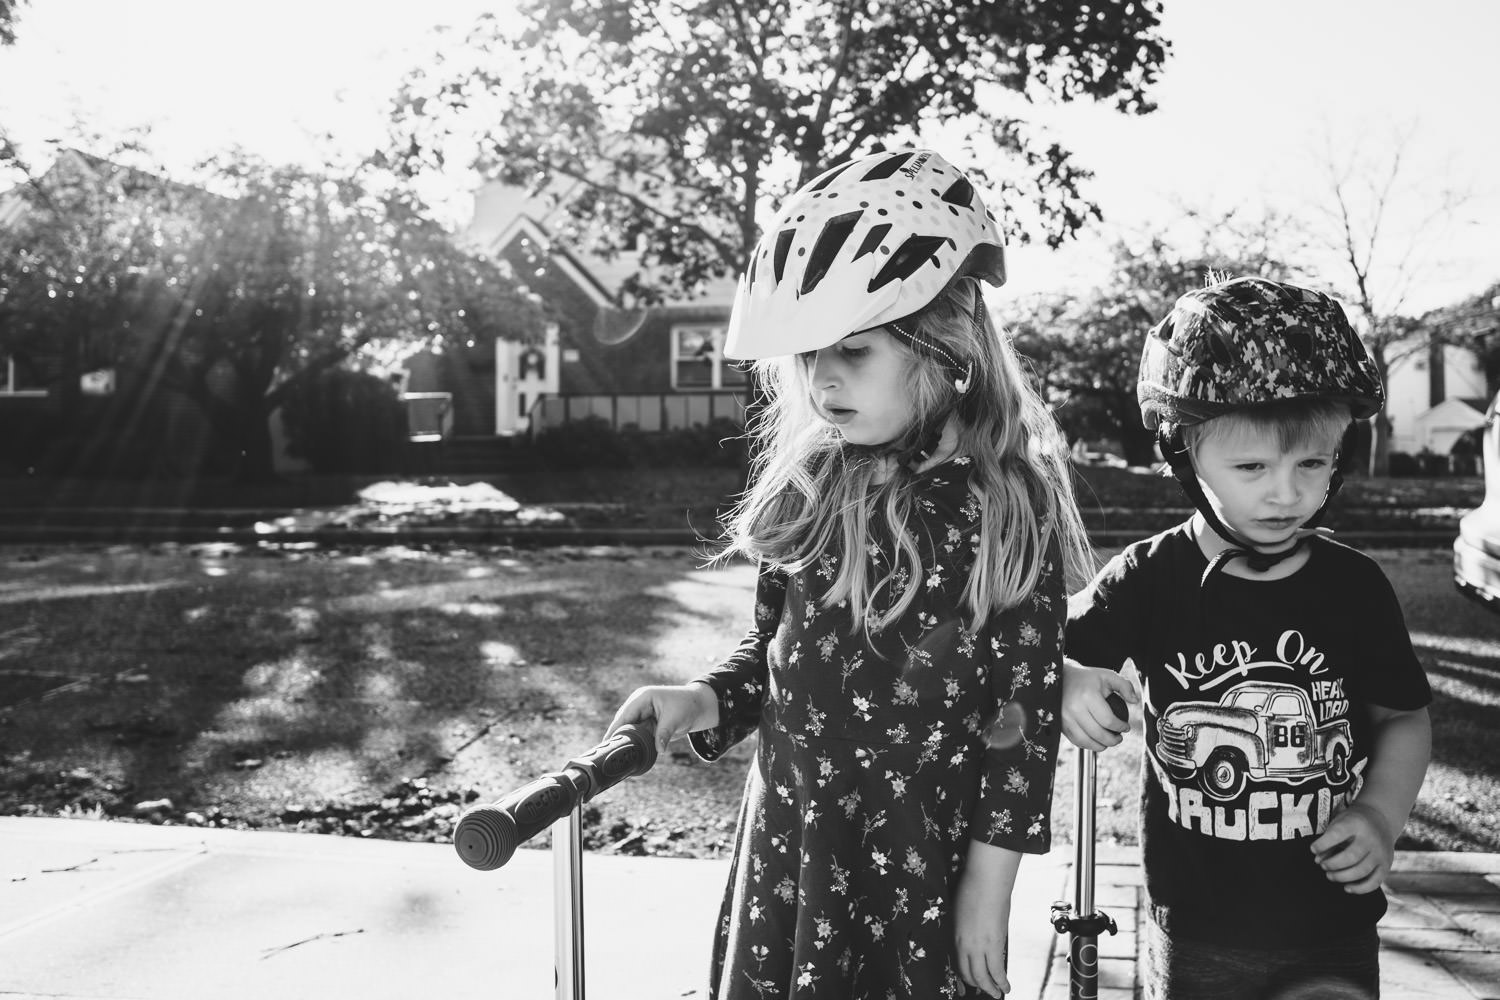 Two children wearing helmets and riding scooters.